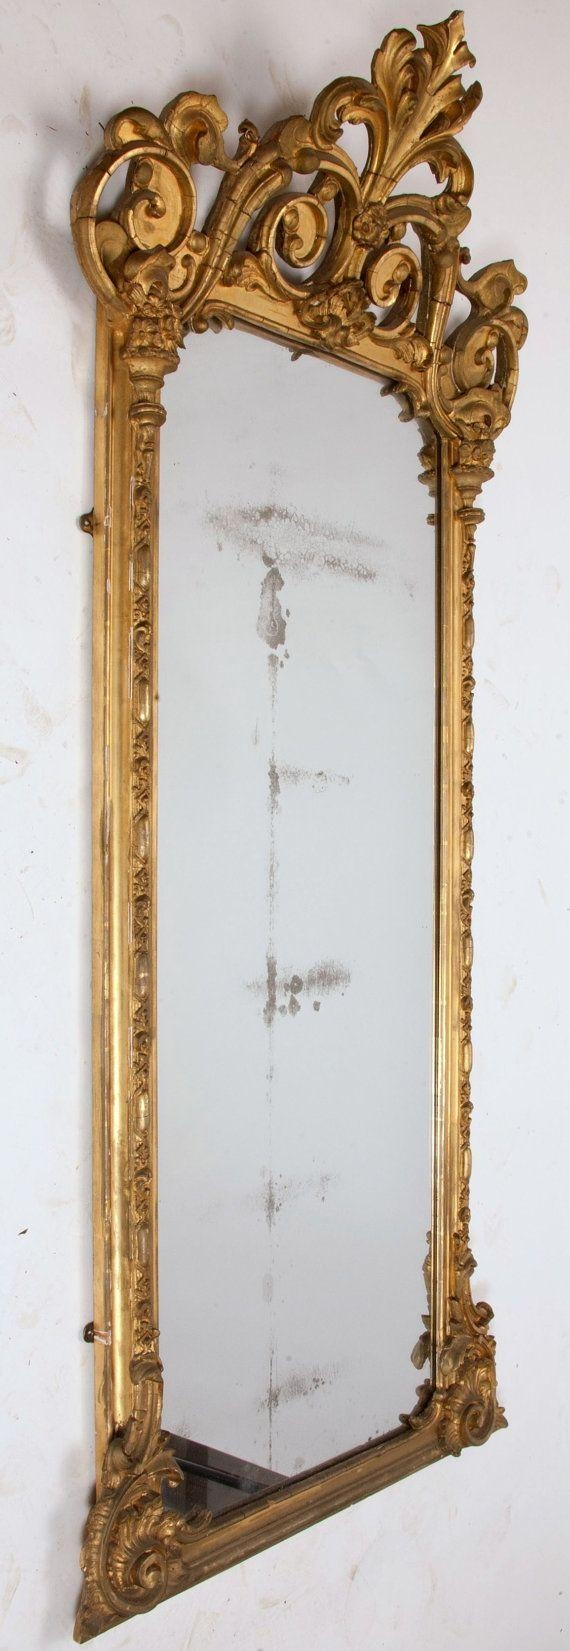 Best 25+ French Mirror Ideas On Pinterest   Antique Mirrors Within French Wall Mirrors (View 11 of 20)